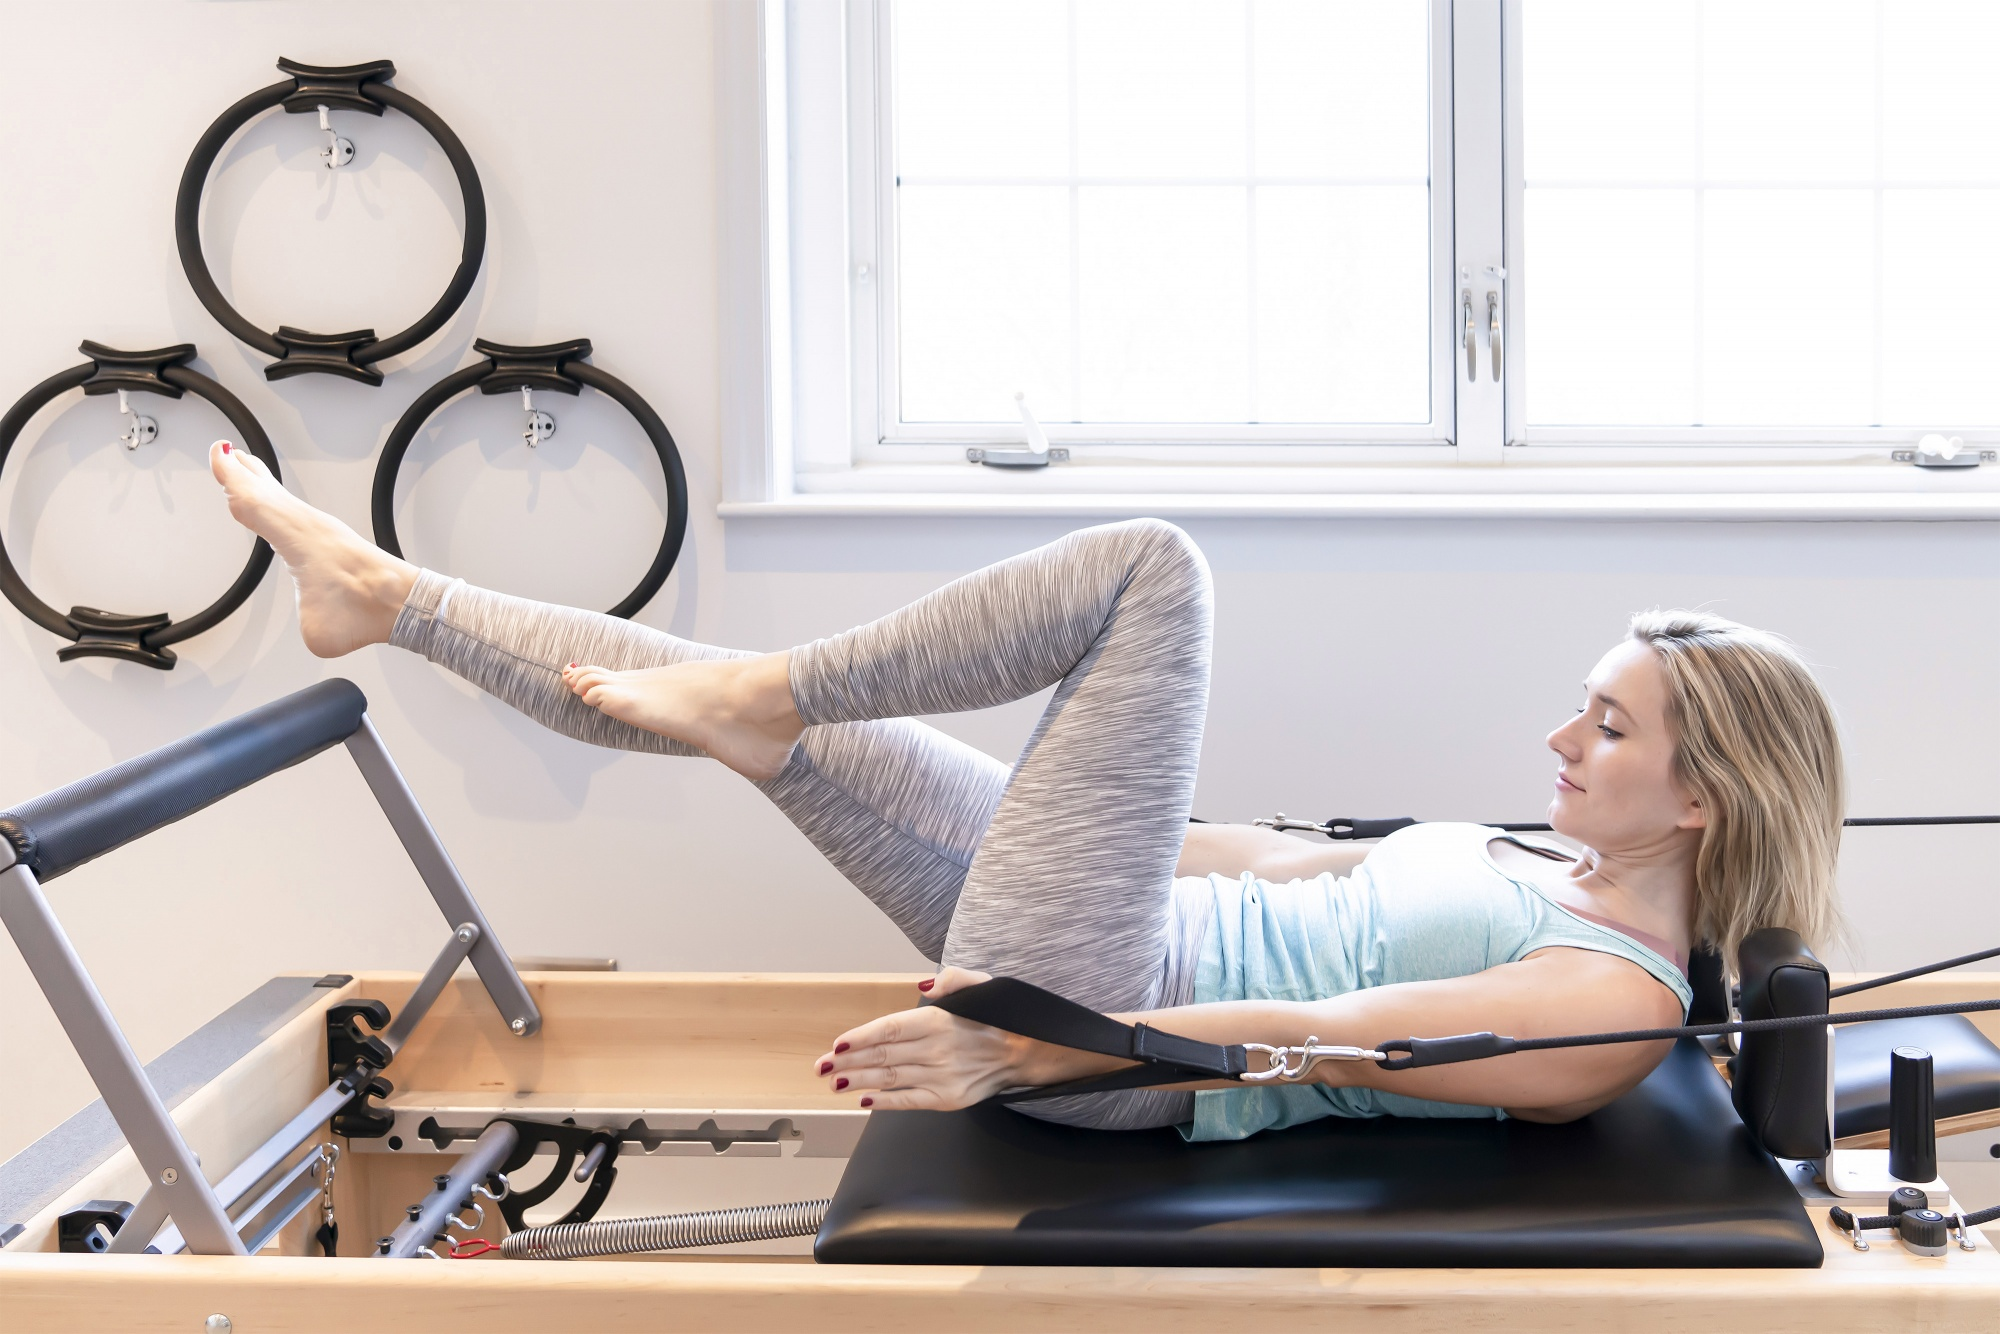 how to get fit over 40, Blonde woman in teal tank and spacedyed grey leggings on Reformer